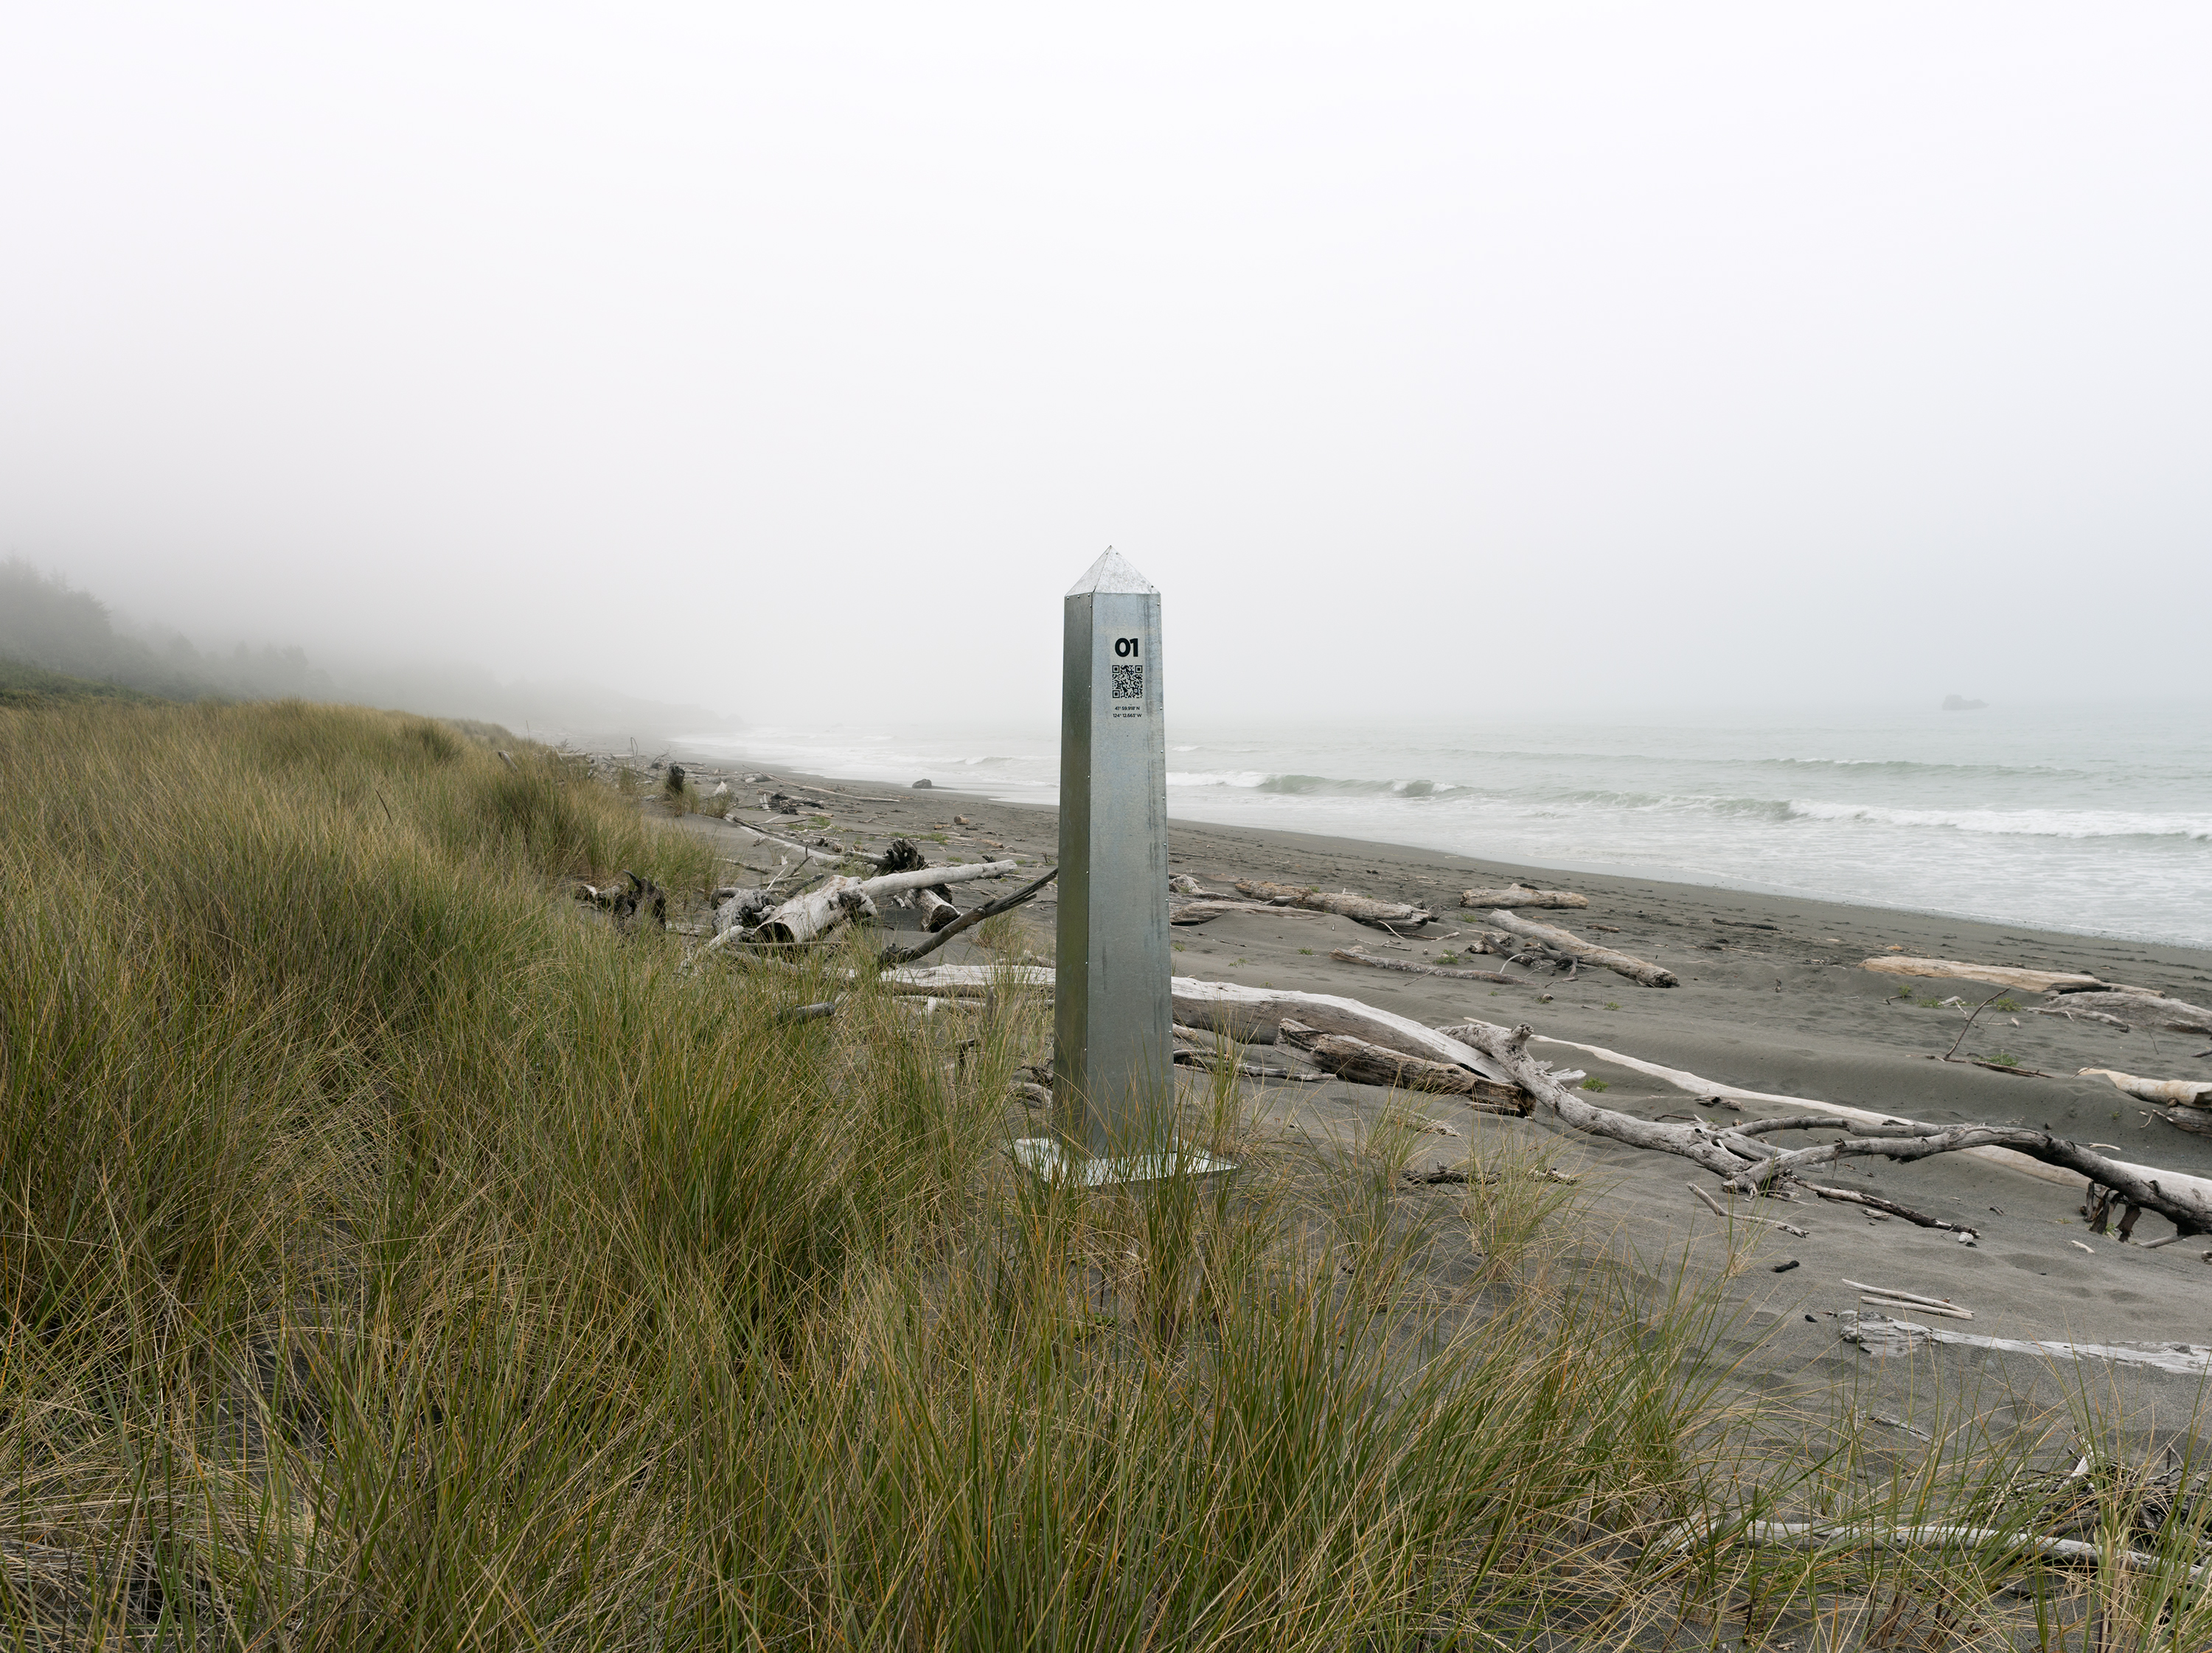 Monument 1, Pacific Coast, South of Brookings, Oregon